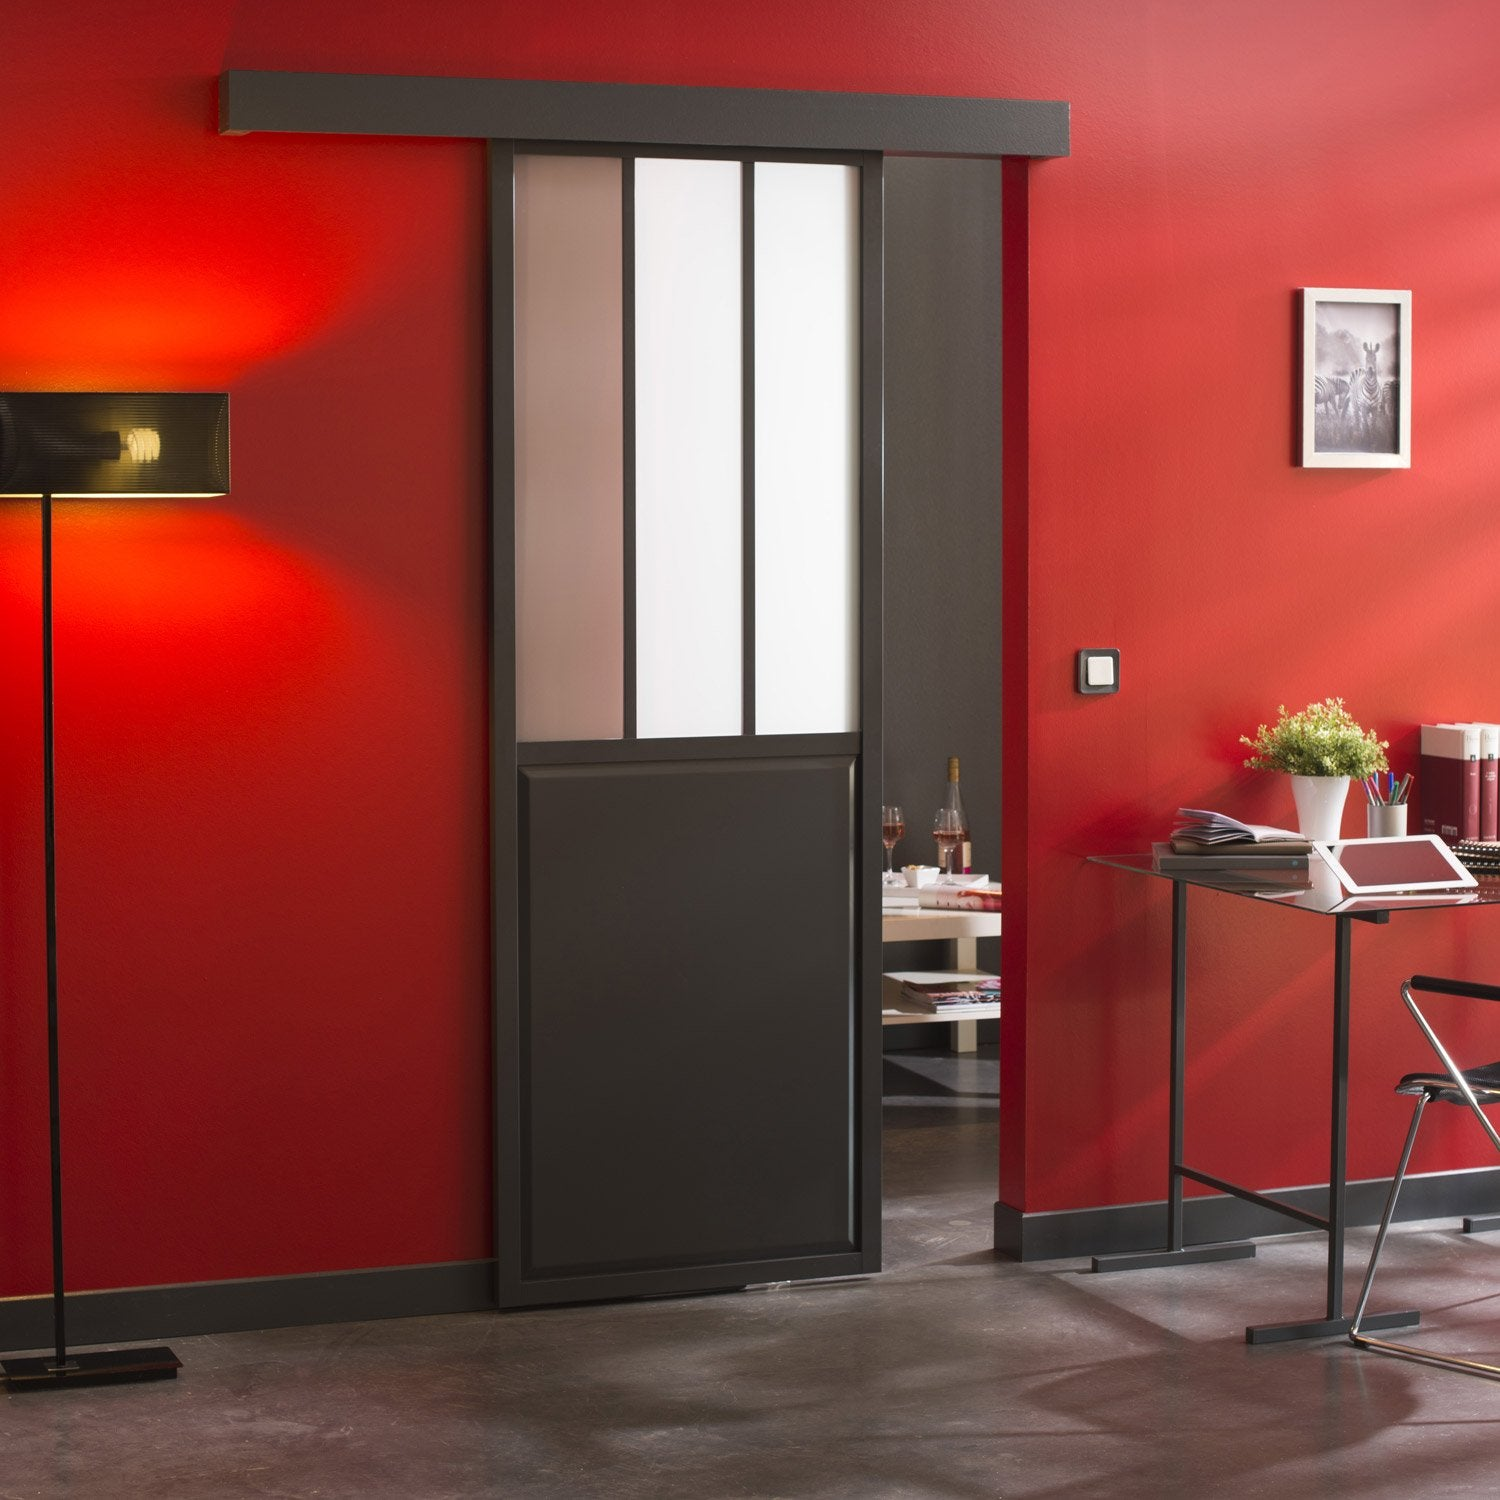 Ensemble porte coulissante atelier verre clair mdf rev tu for Porte en verre leroy merlin